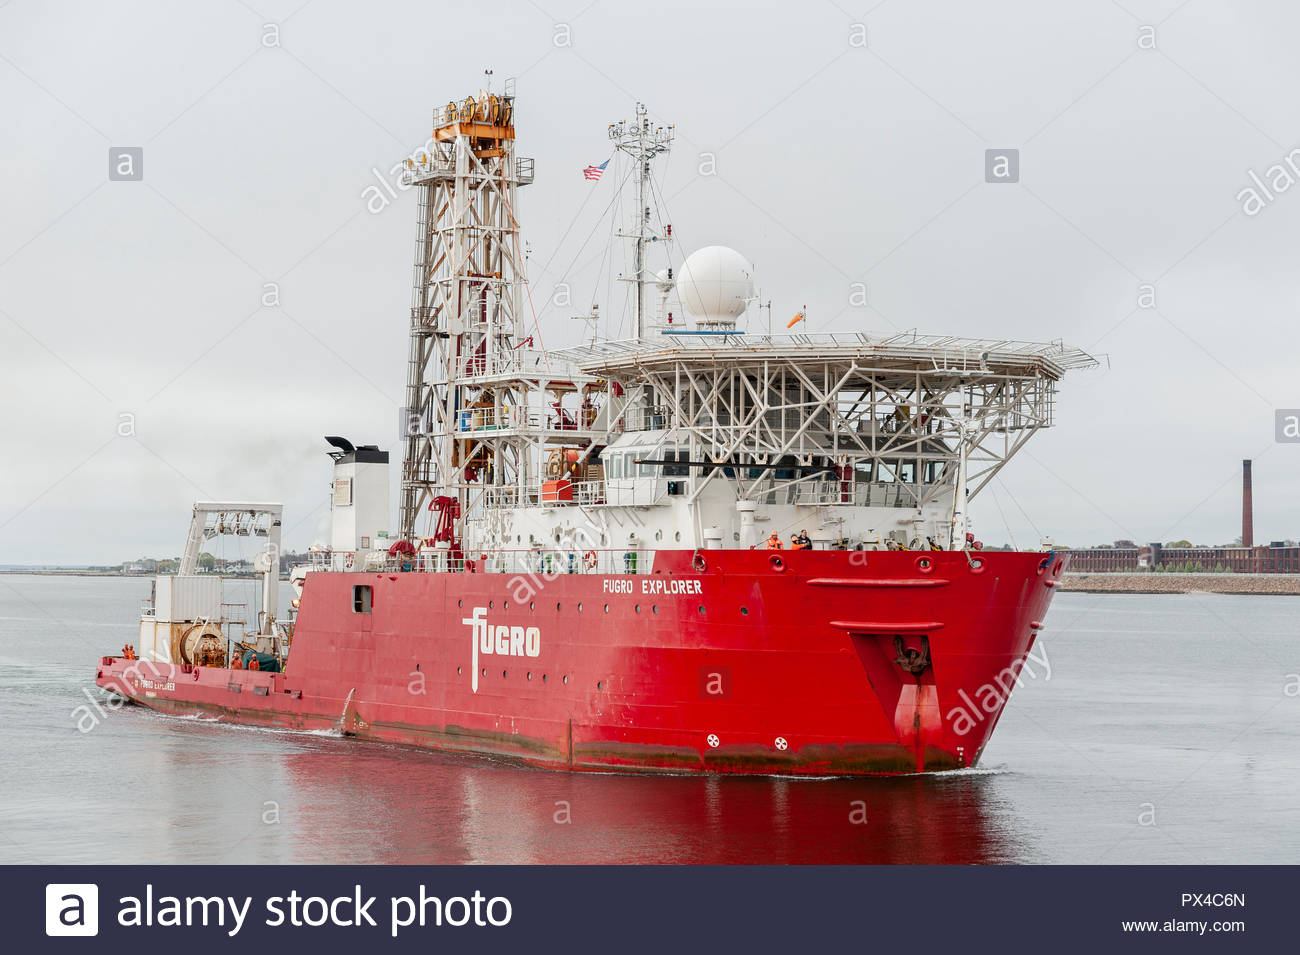 New Bedford, Massachusetts, USA - May 10, 2018: Geotechnical drilling ship Fugro Explorer approaching New Bedford from Buzzards Bay. - Stock Image